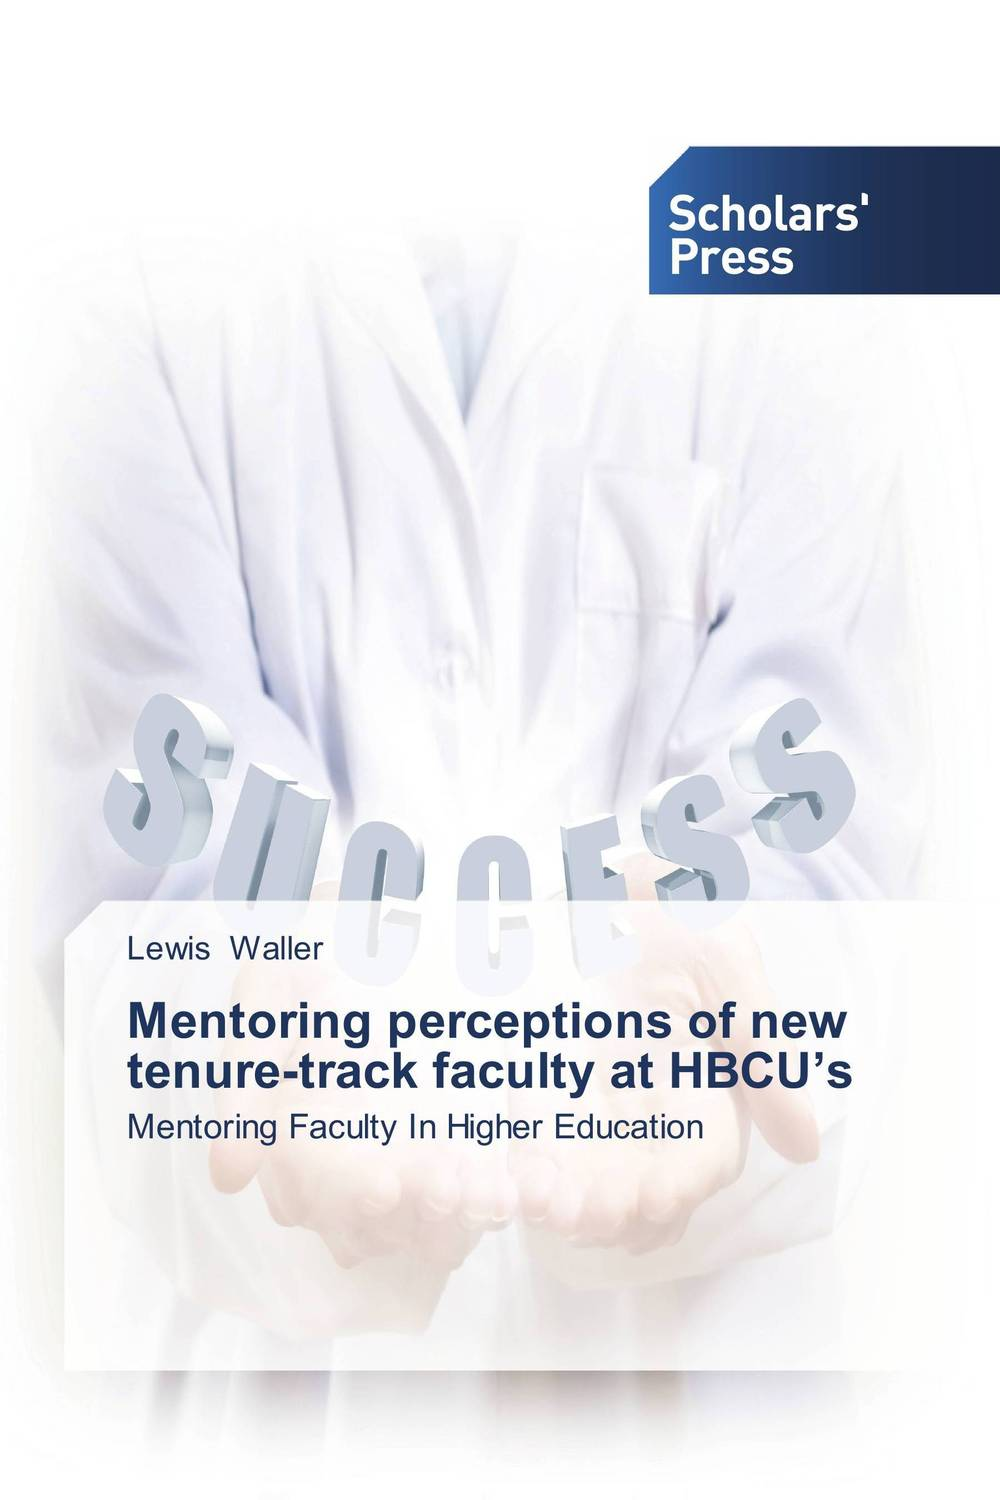 Mentoring perceptions of new tenure-track faculty at HBCU's